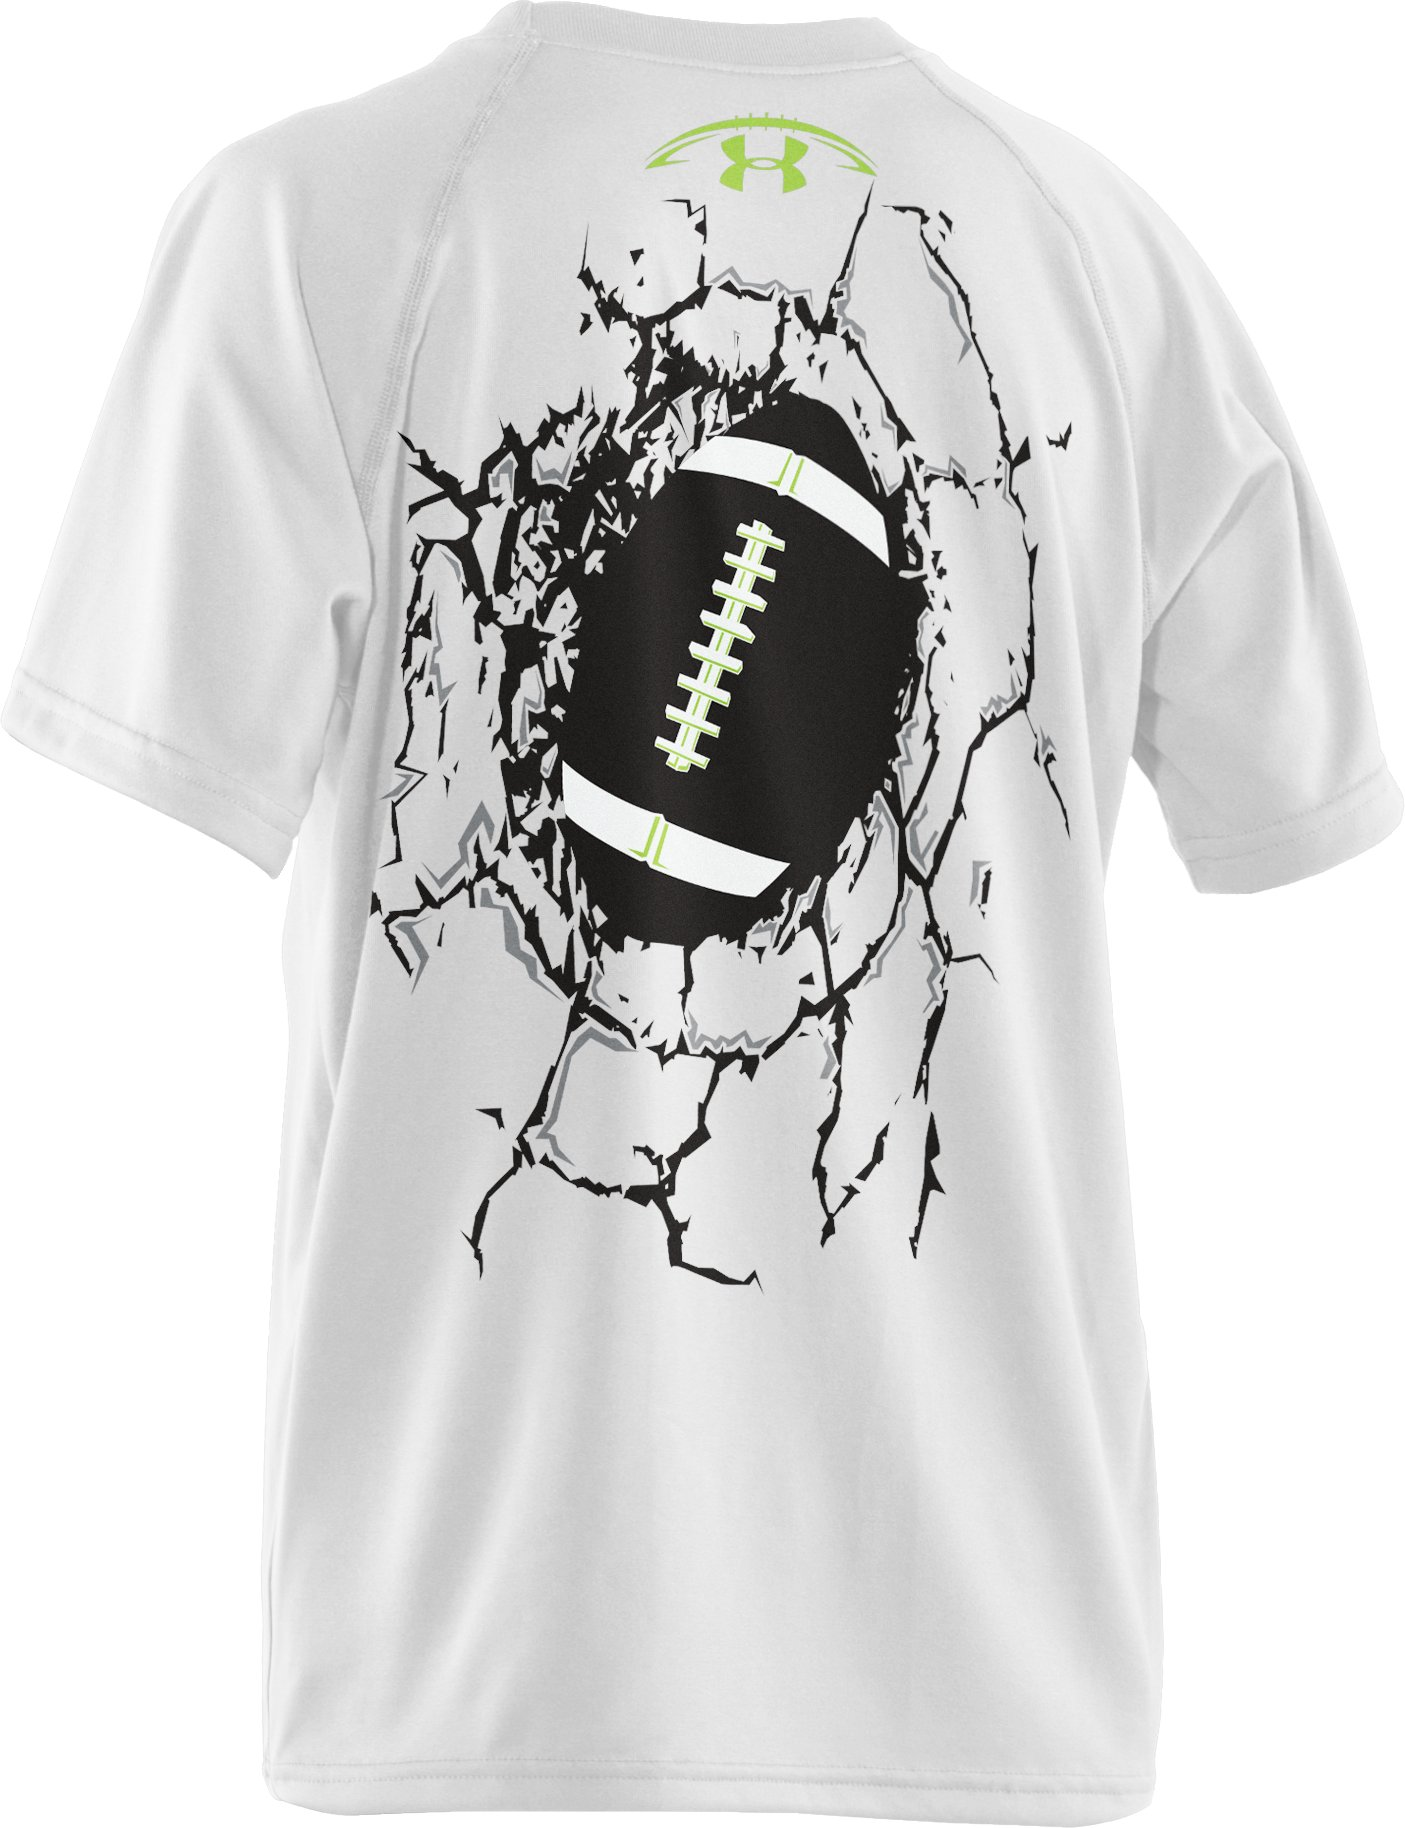 Boys' UA Break Thru T-Shirt, White